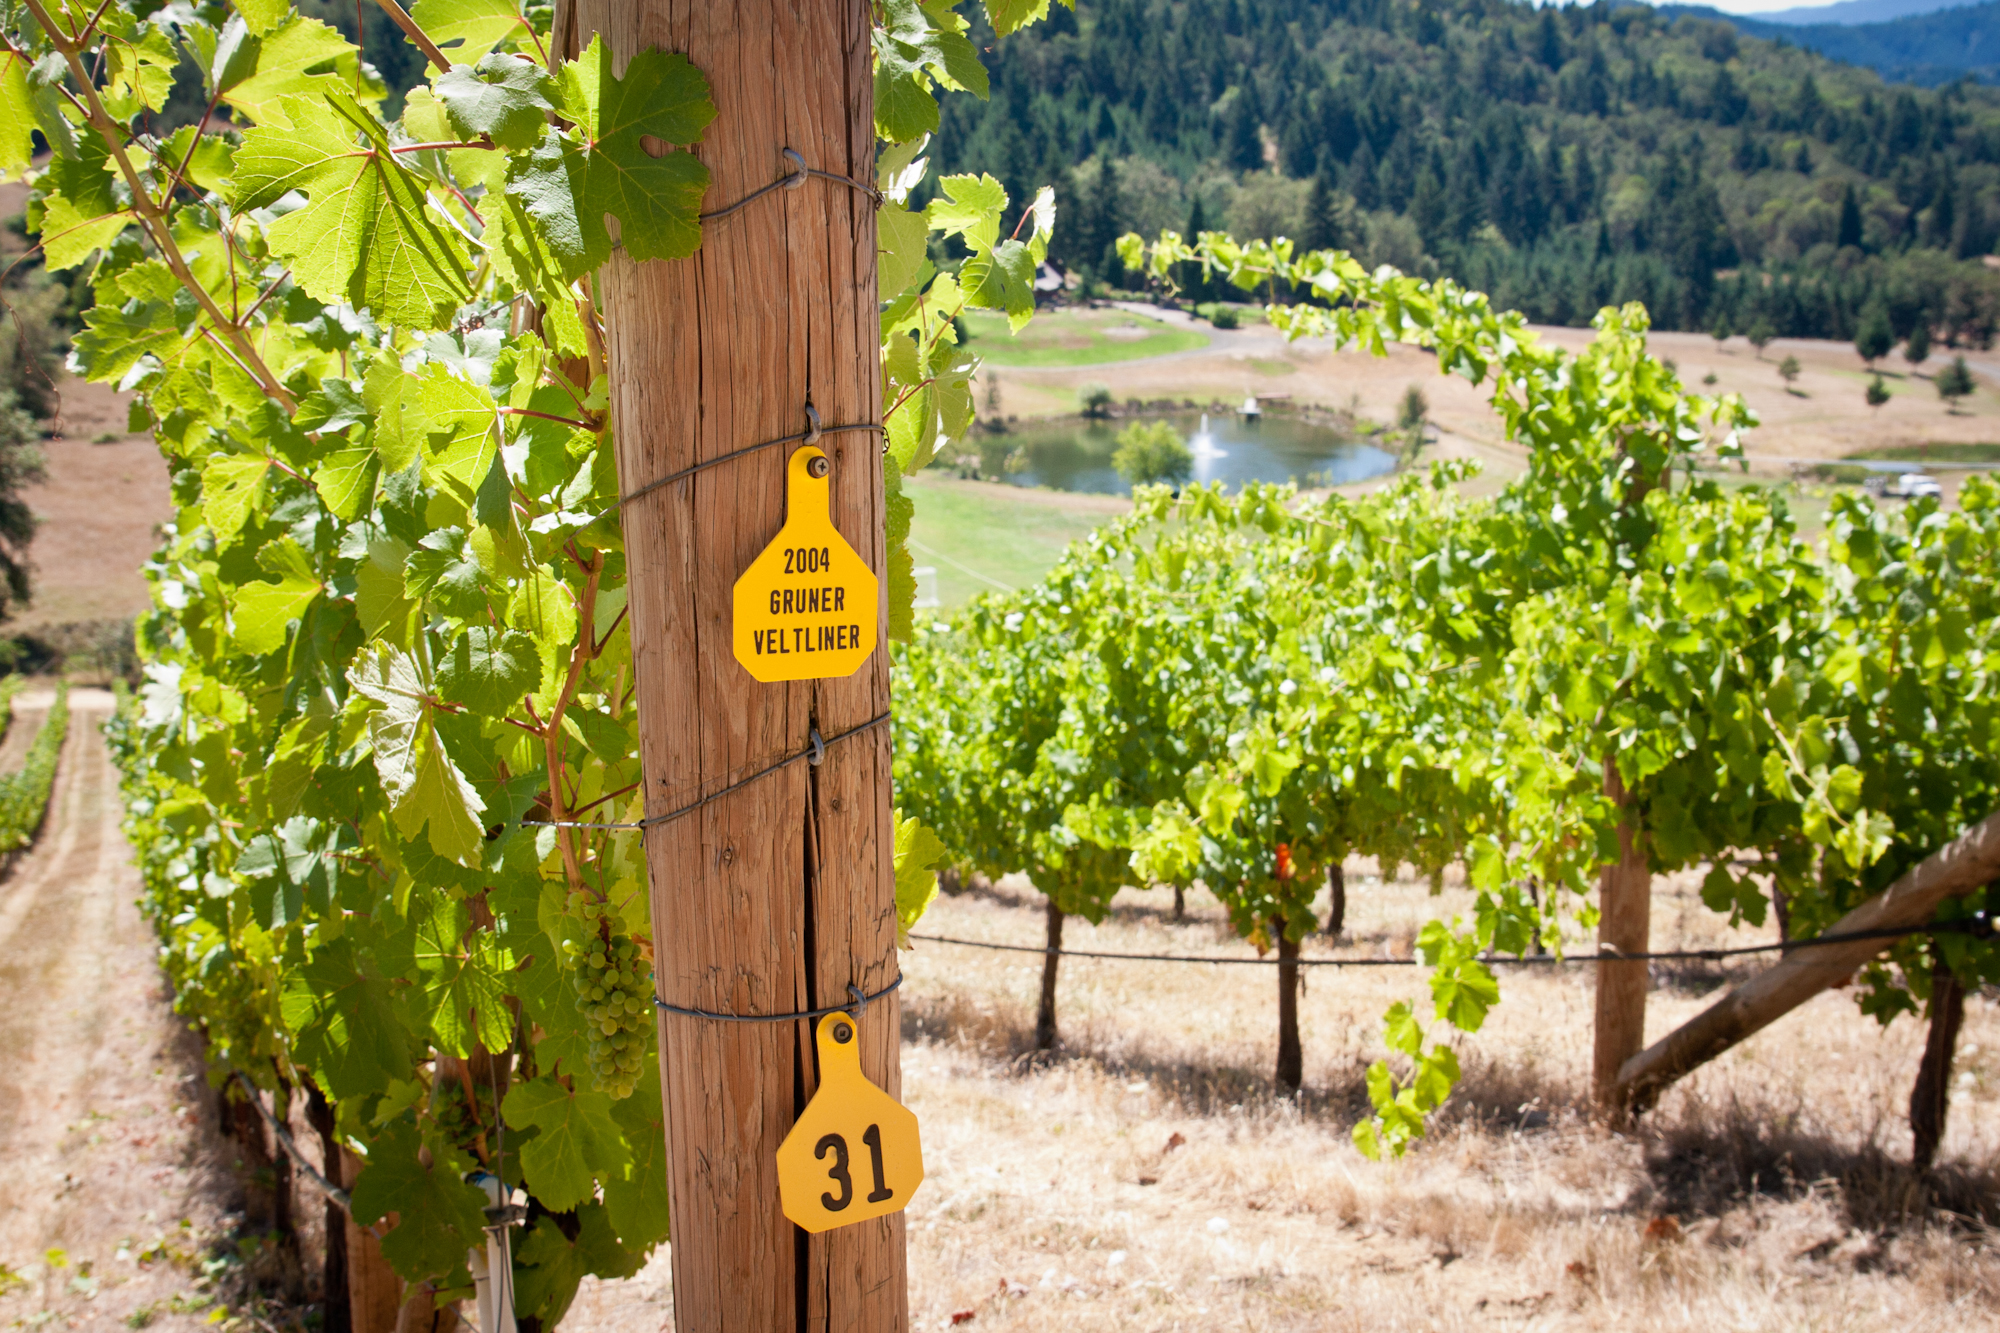 Reustle-Prayer Rock Vineyards, located in the Umpqua Valley, was the first to commercially produce grüner veltliner in the United States. Photo courtesy of Reustle-Prayer Rock Vineyards.